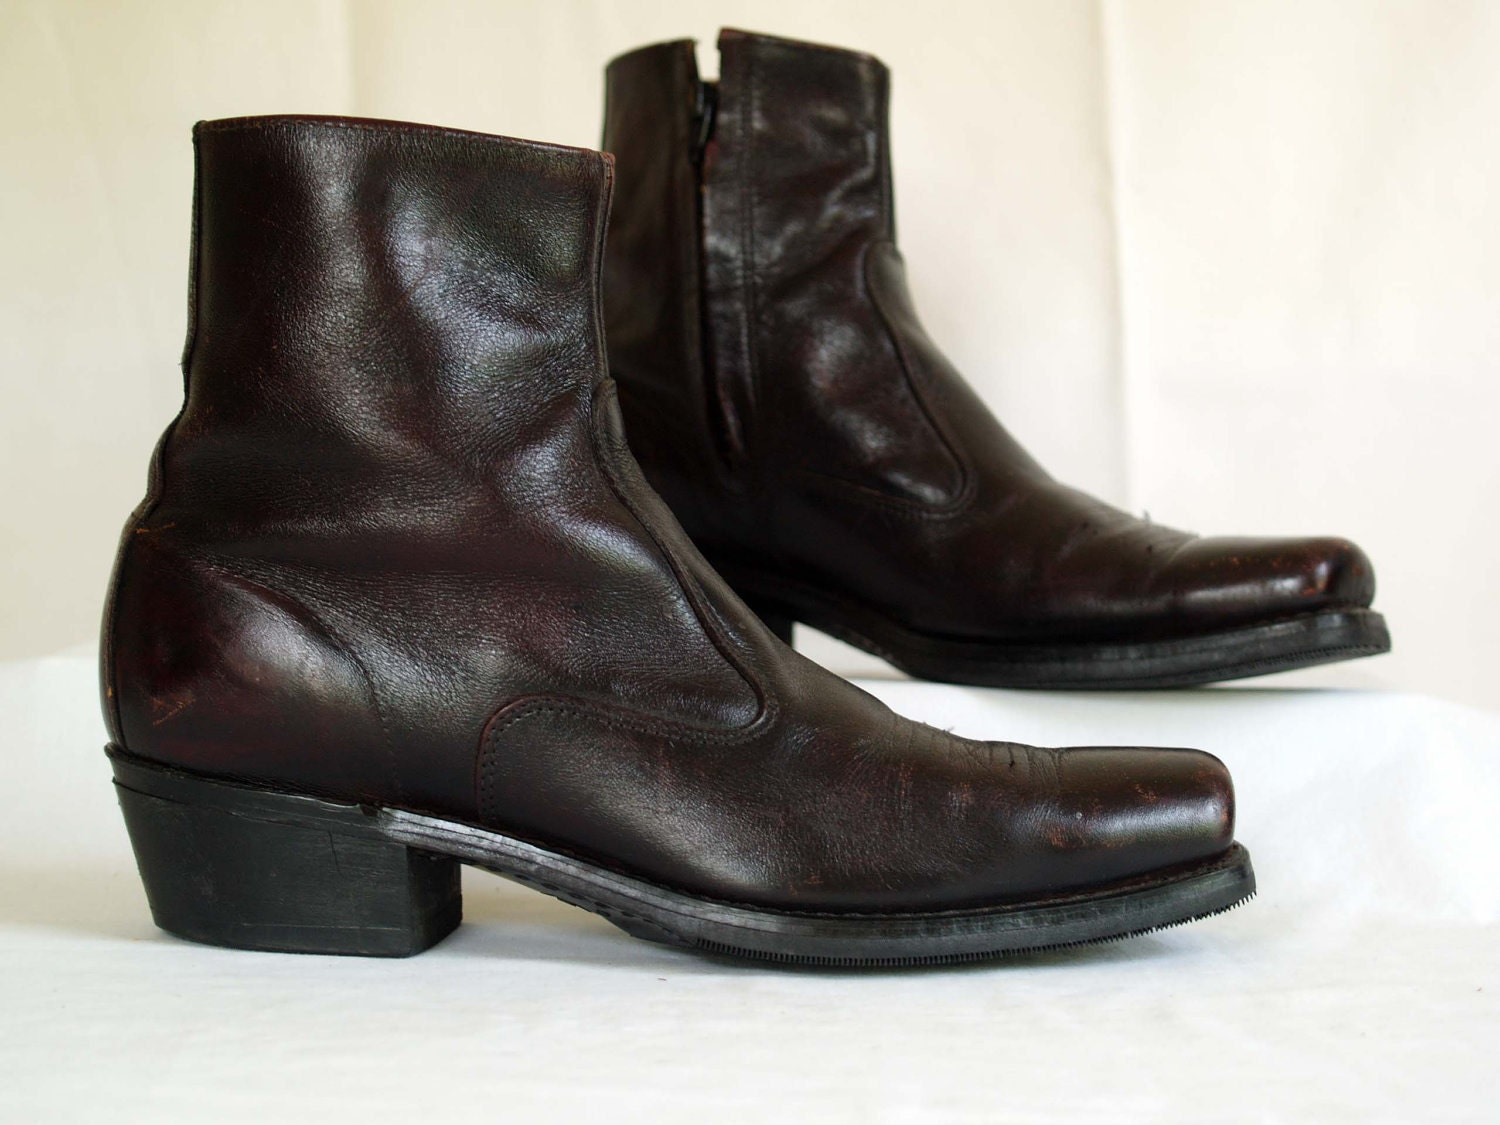 vintage s boots in a brown leather beatle by